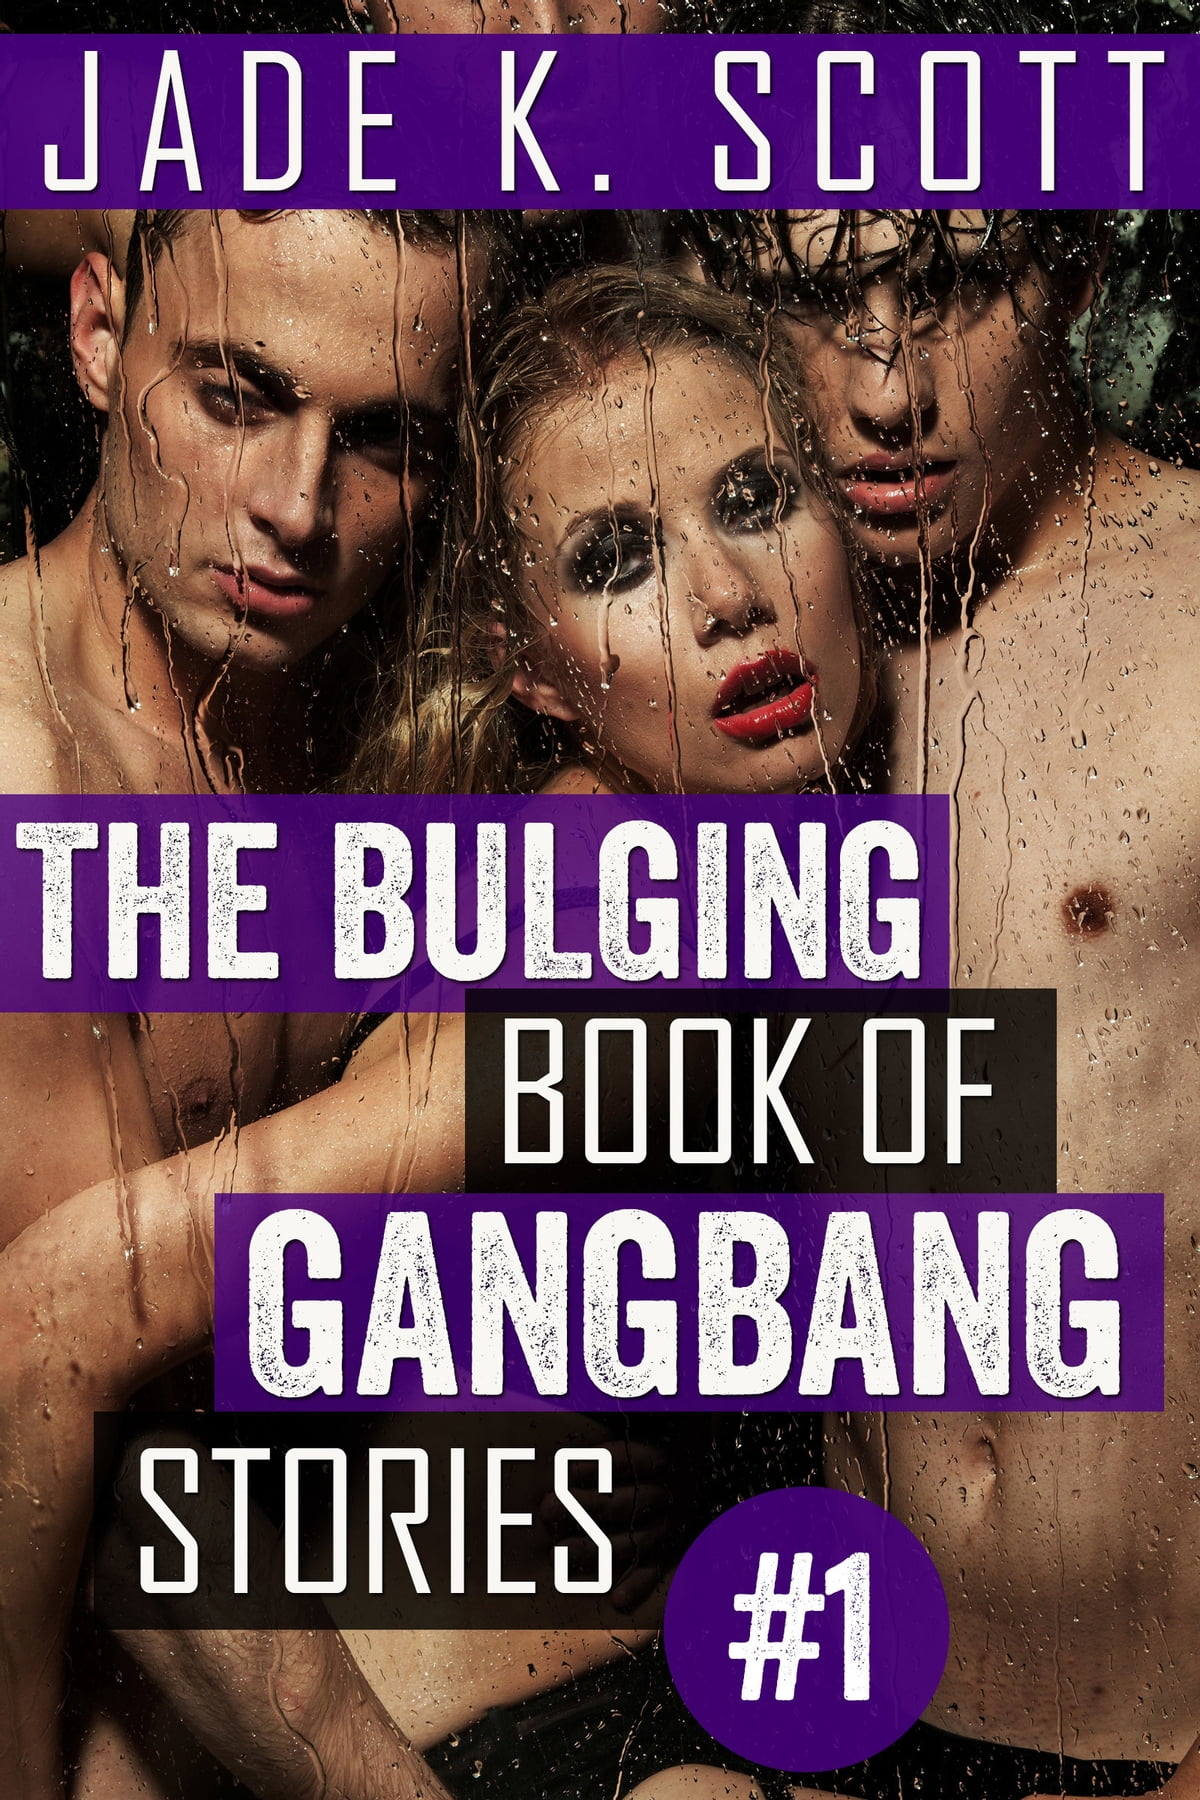 First gang bang stories not